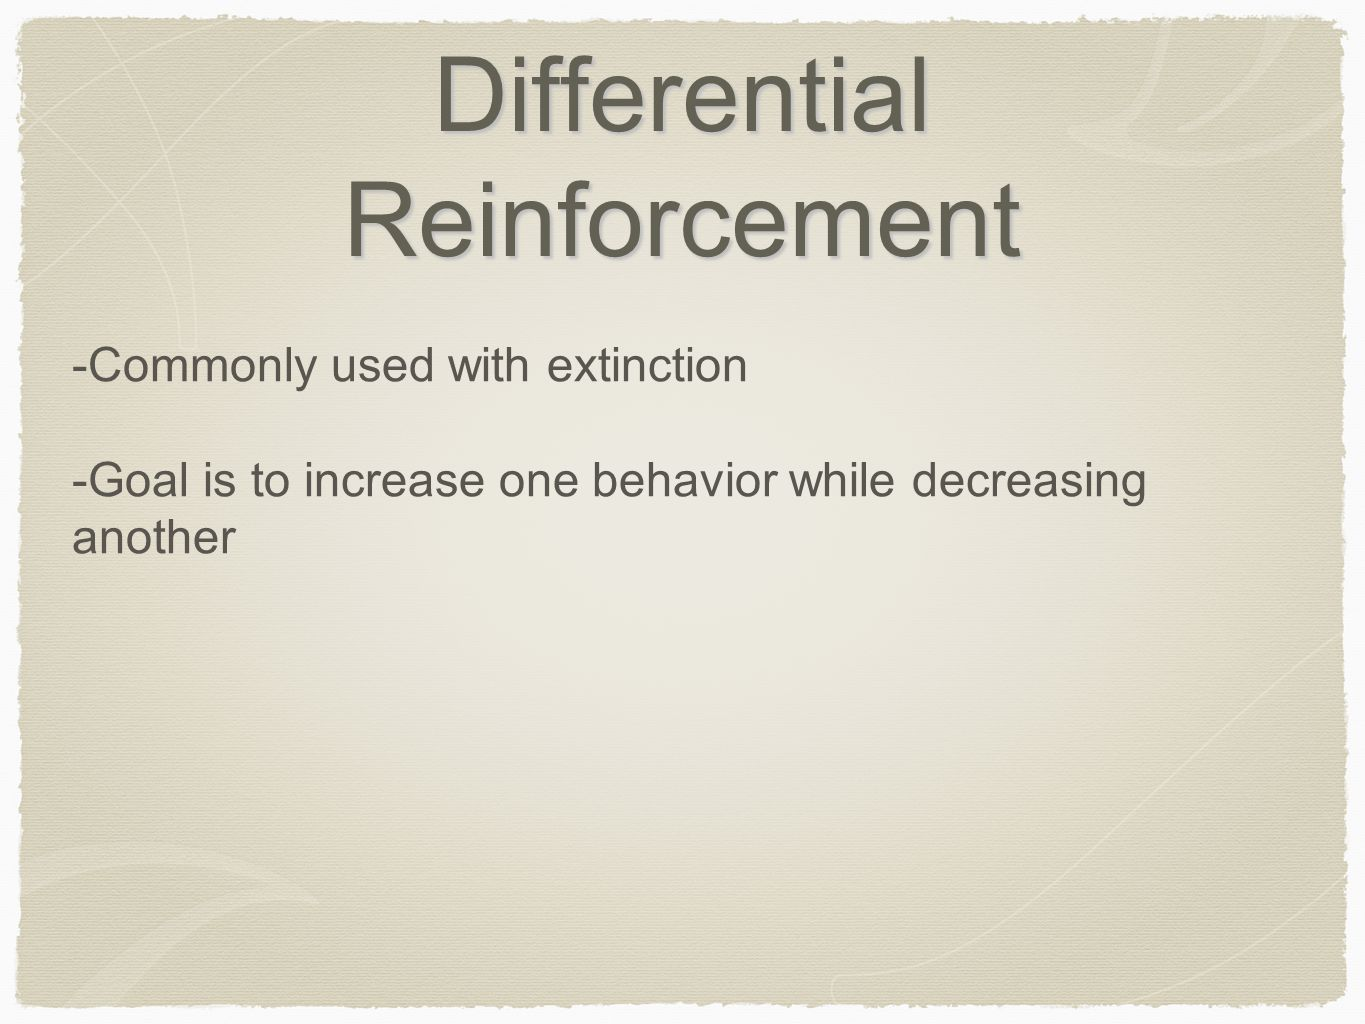 Differential Reinforcement -Commonly used with extinction -Goal is to increase one behavior while decreasing another